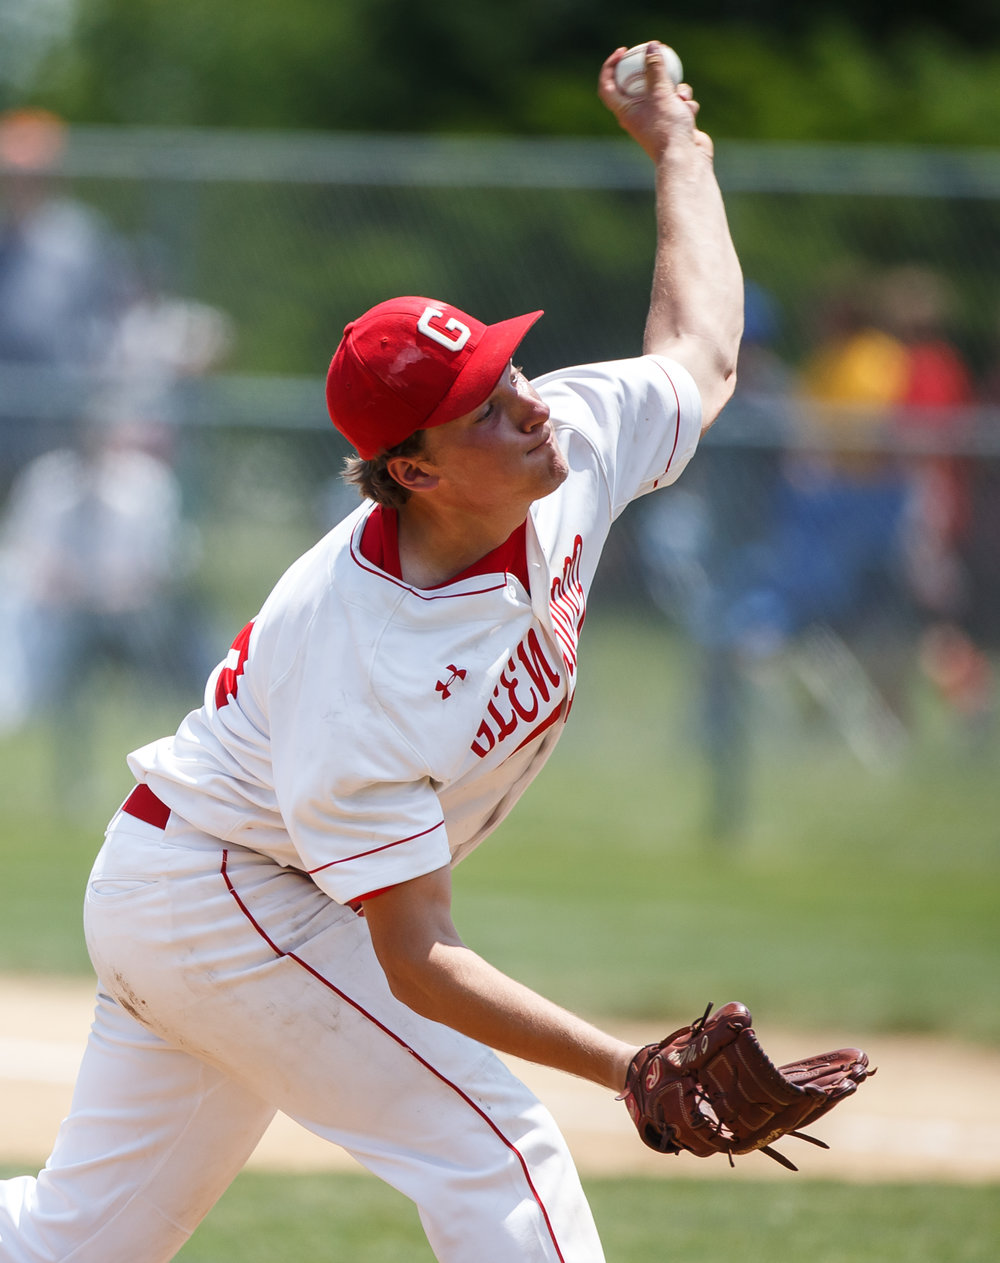 Glenwood's Reid Detmers (28) delivers a pitch against Champaign Central in the fifth inning during the Class 3A Glenwood Sectional championship at Chatham Community Park, Saturday, June 3, 2017, in Chatham, Ill. [Justin L. Fowler/The State Journal-Register]